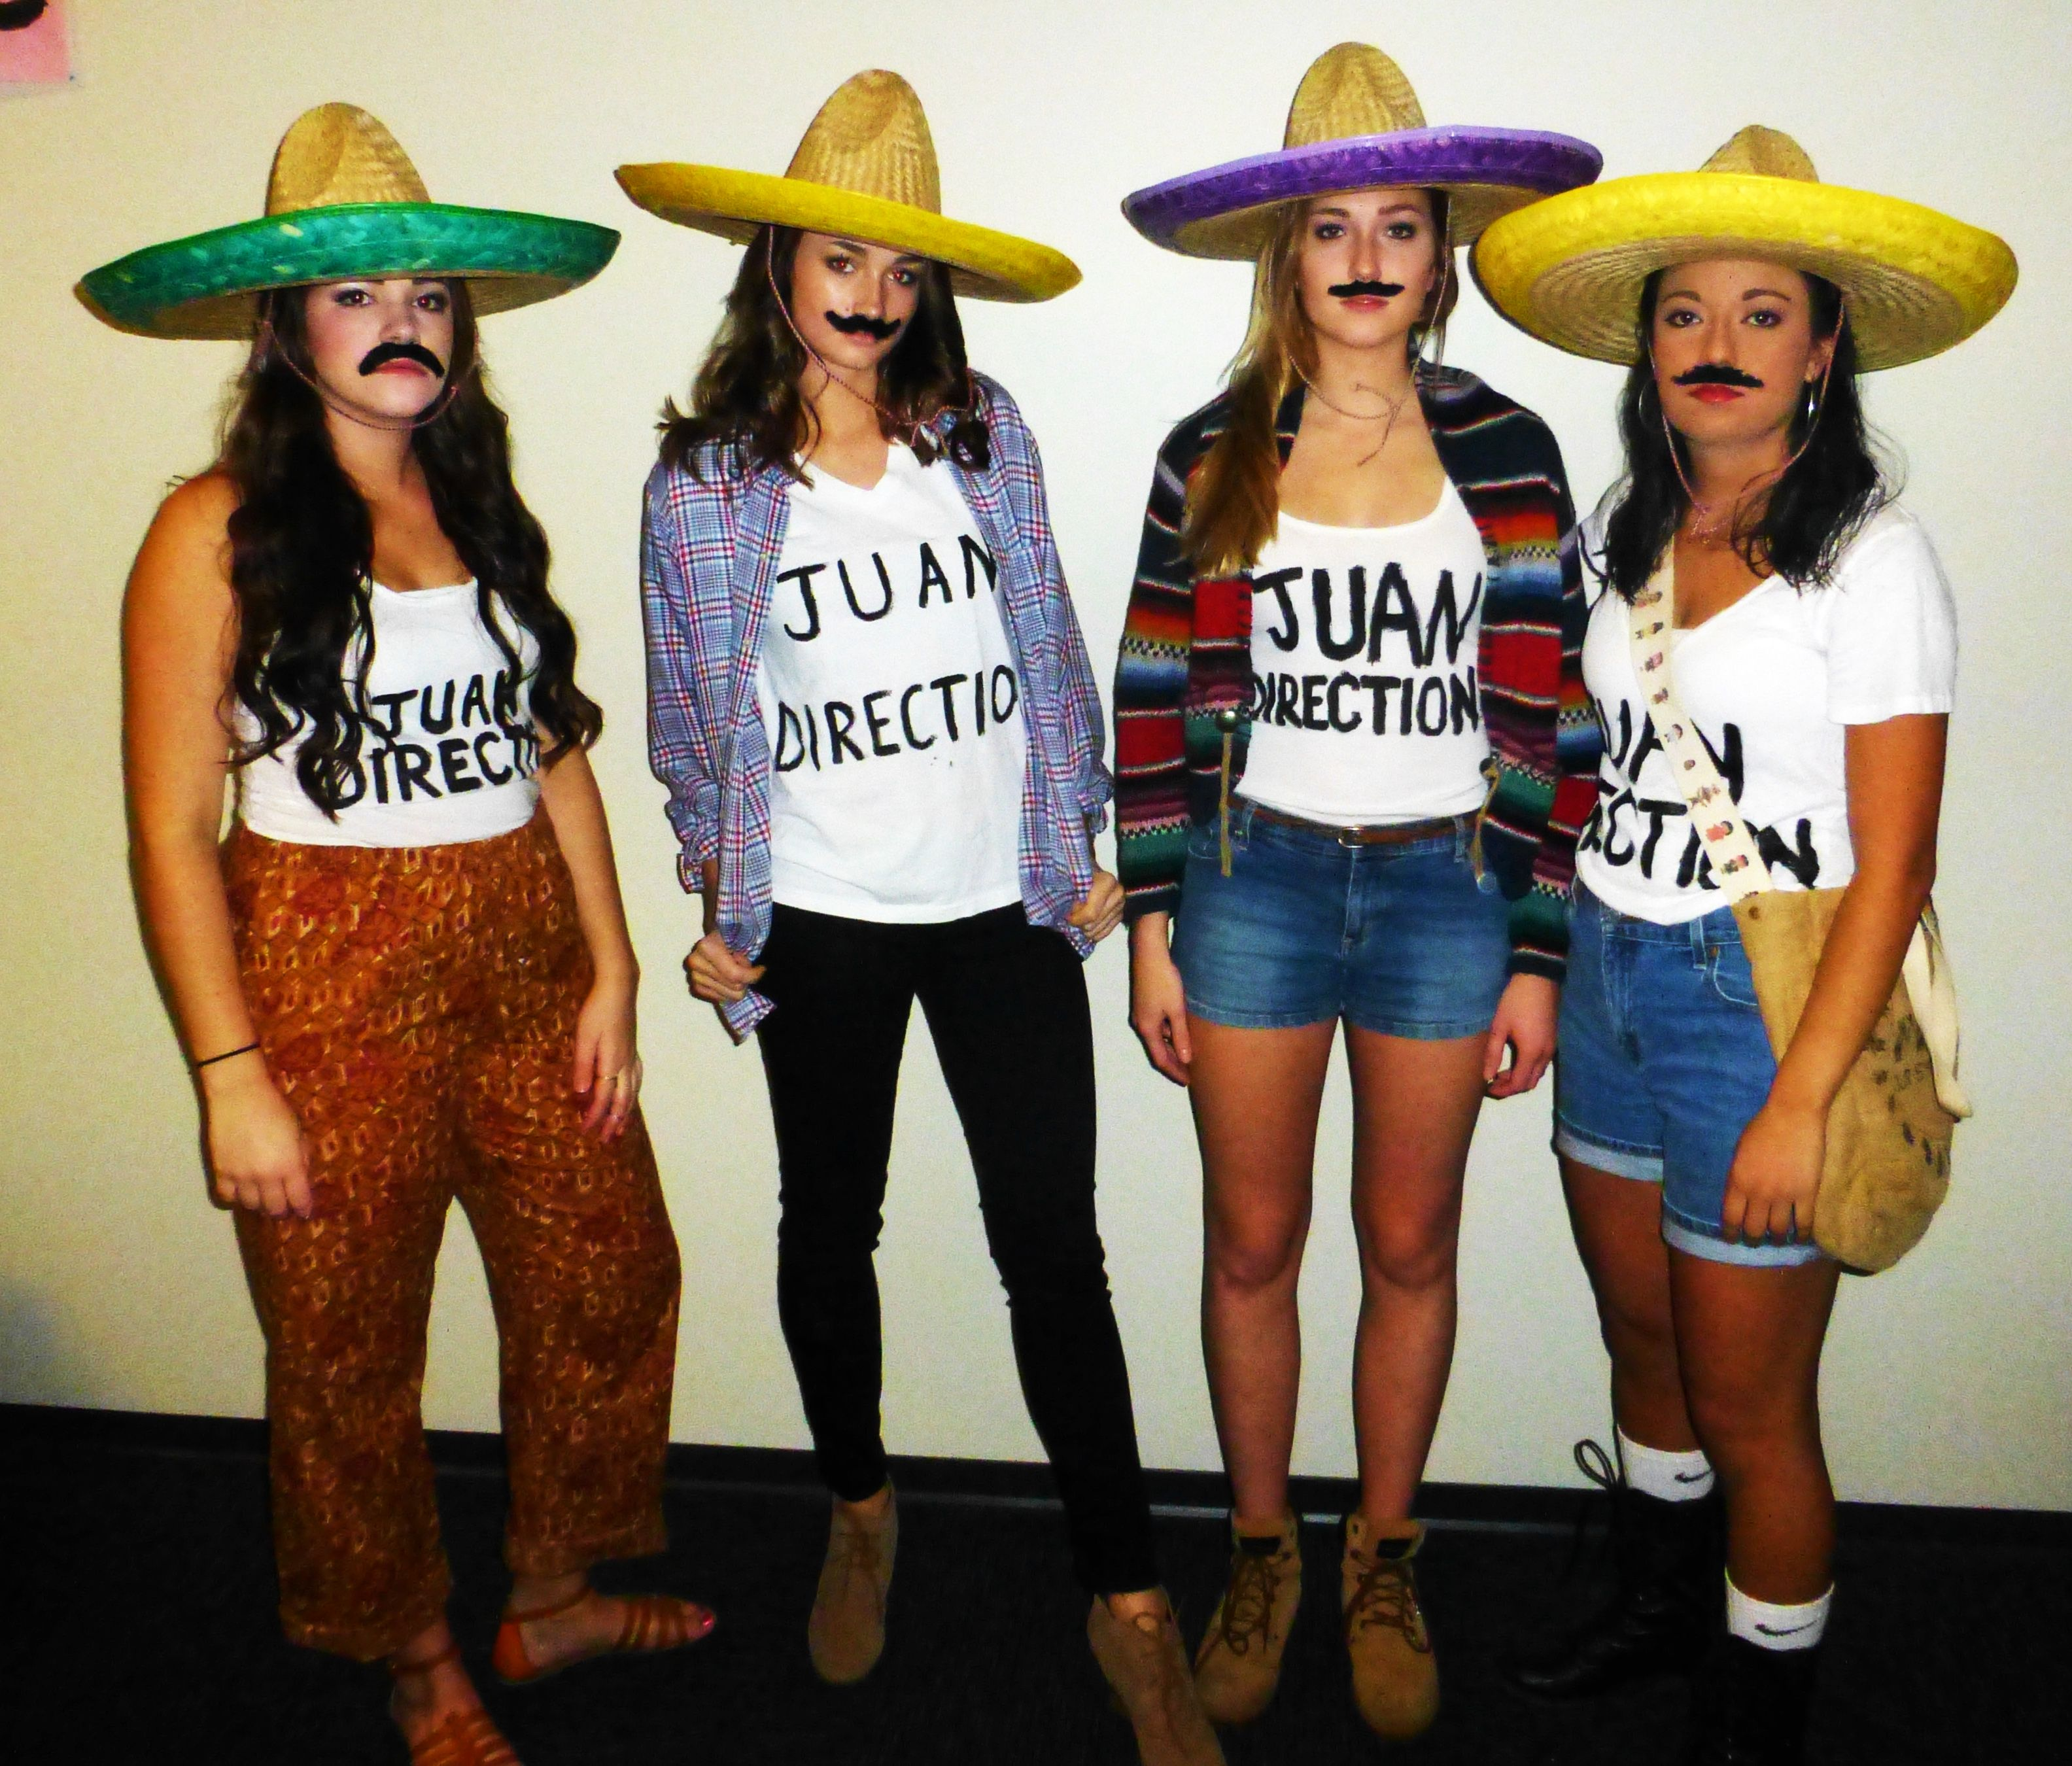 wish i was going to be here for halloween juan direction aka best halloween costume ever